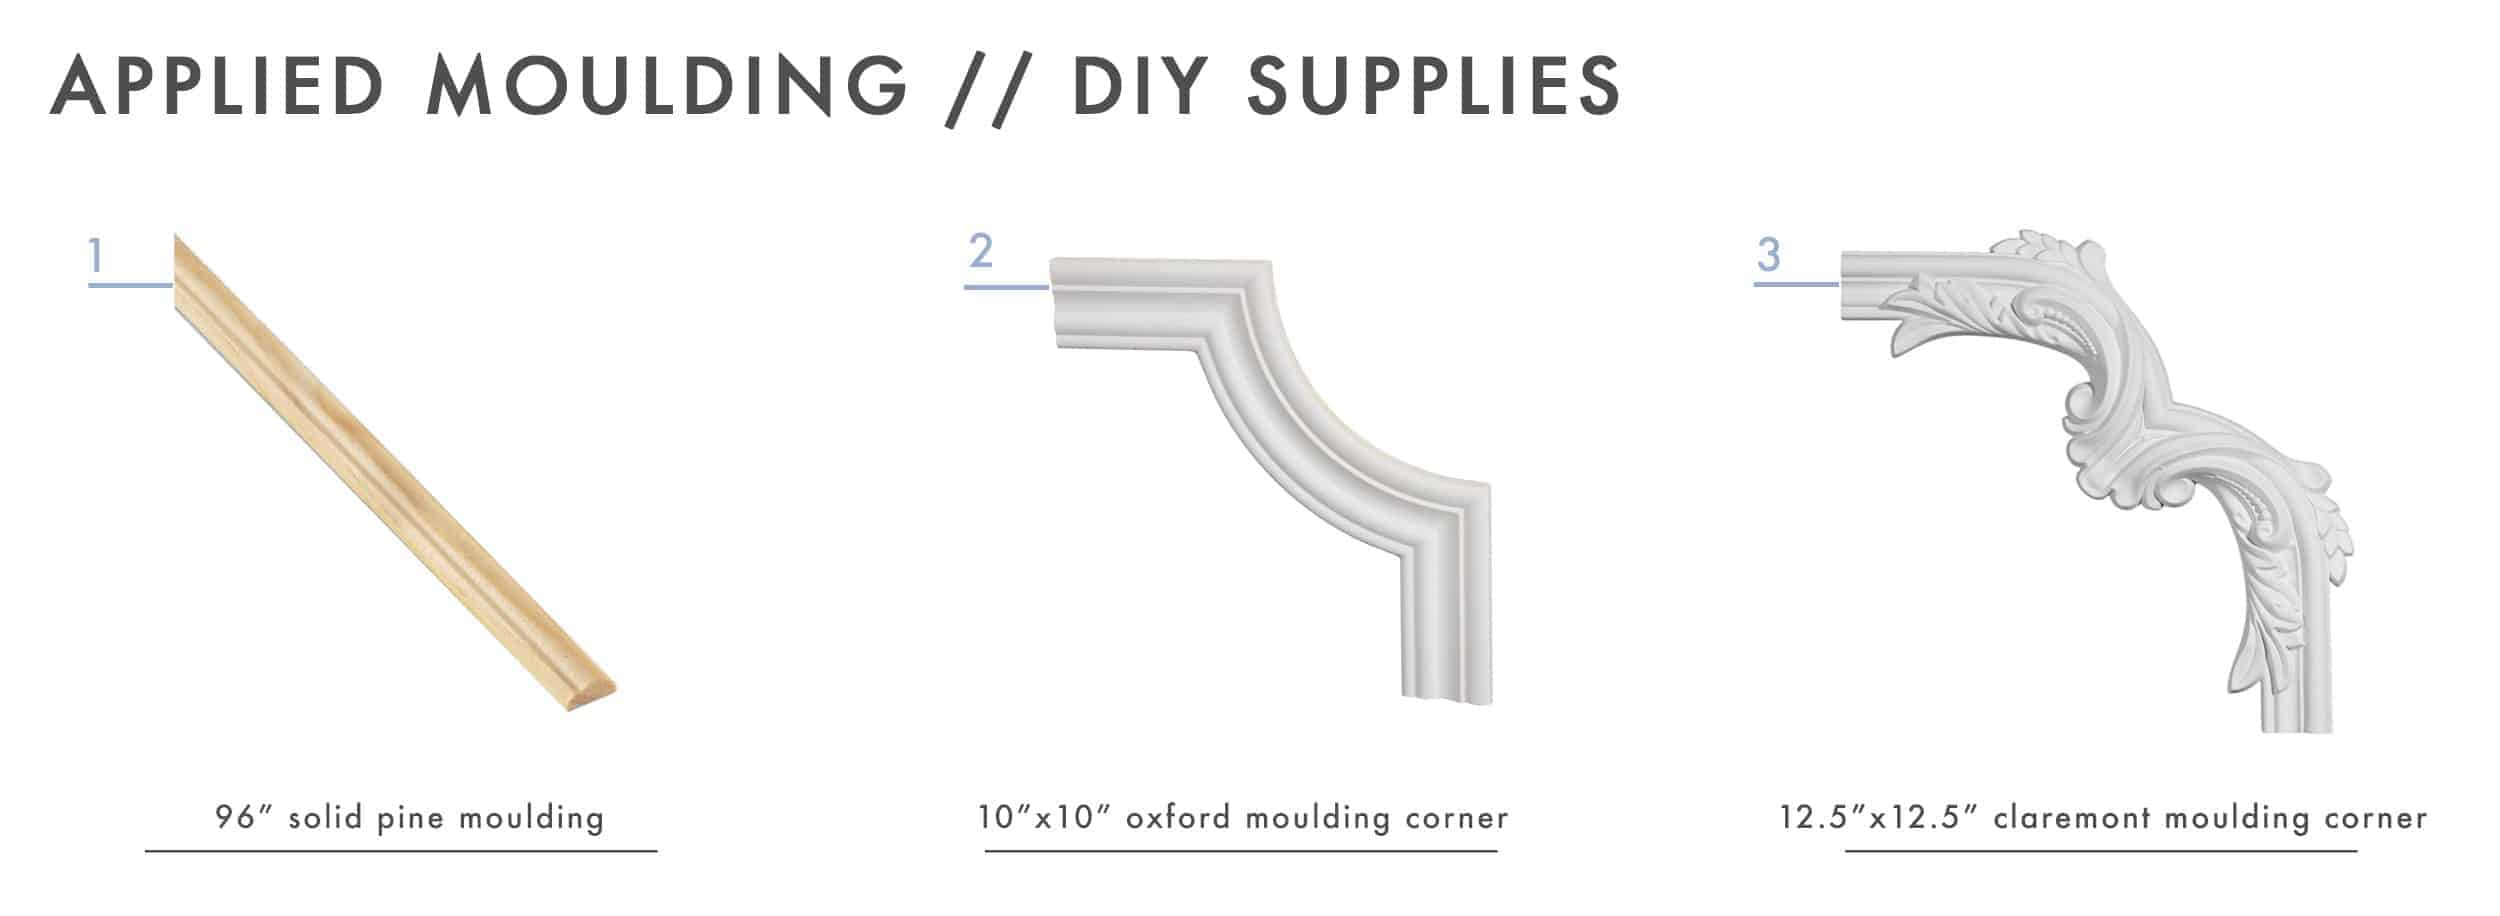 How To Add Character And Charm To Boring Architecture And Houses Ceiling Applied Moulding Diy Supplies 01